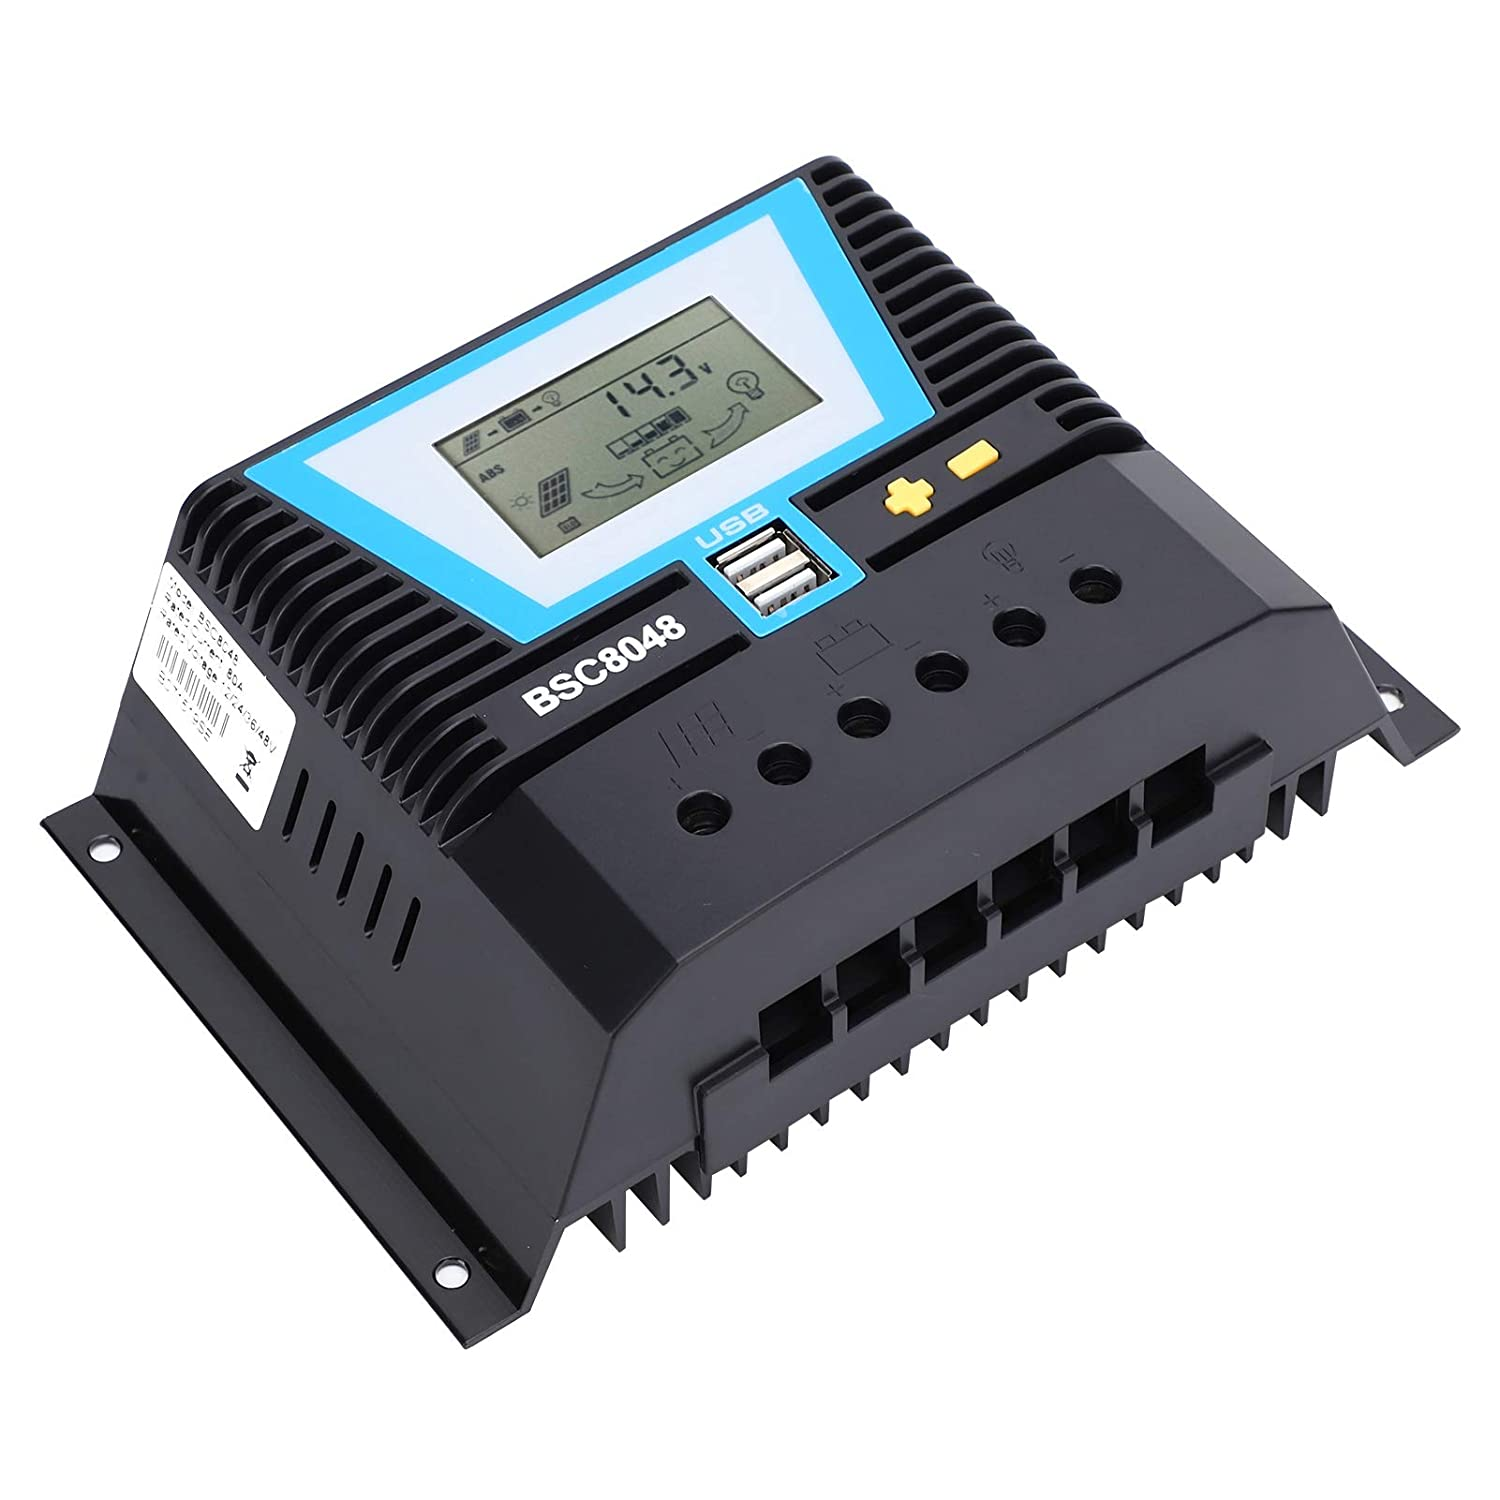 Solar Controller Luxury goods Fixed price for sale Strong Adaptability In Intelligent Recognition